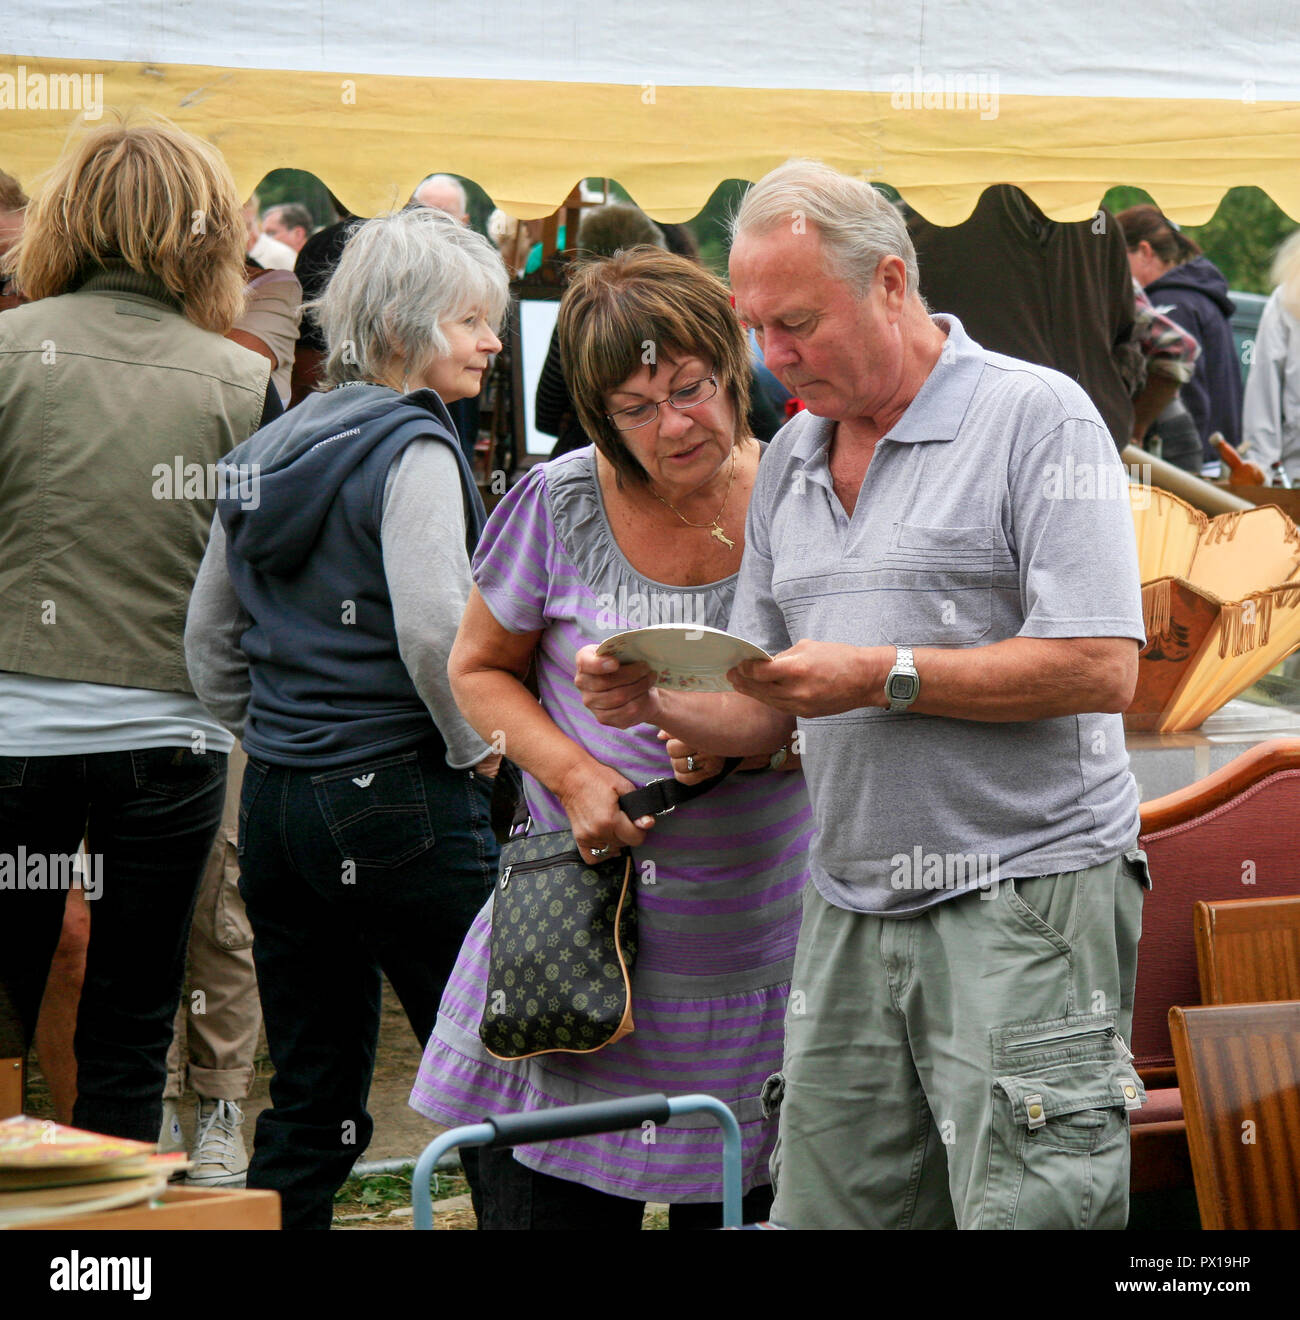 Couples look to a plate of auction gadgets in search of somthing of interest - Stock Image